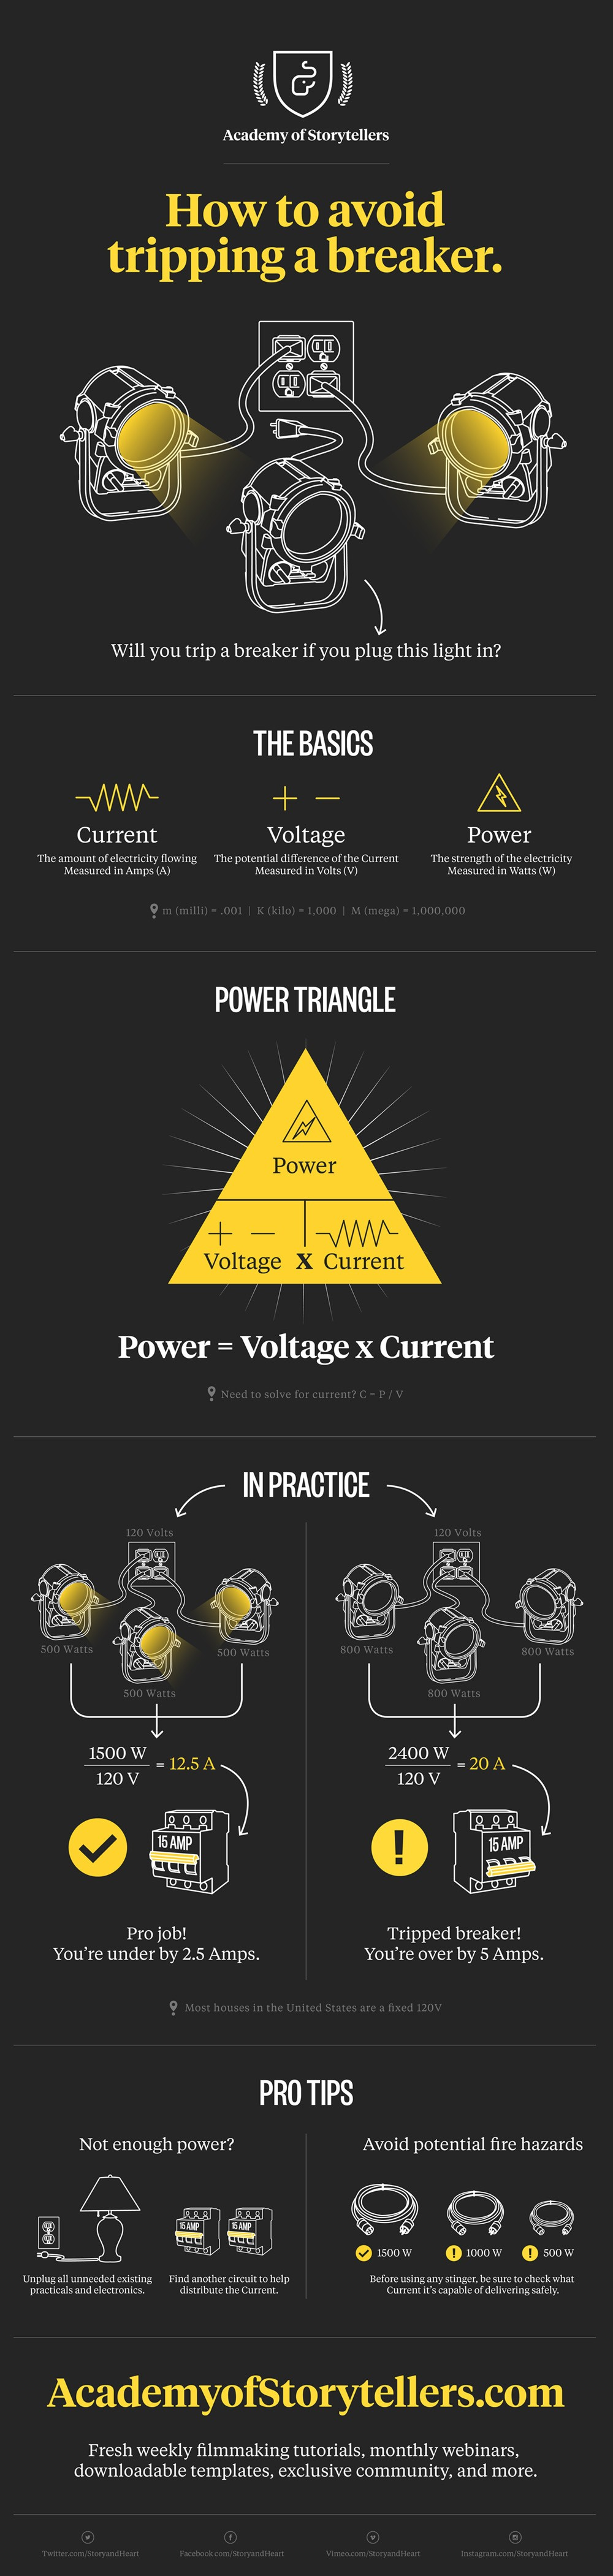 Bathroom Light Keeps Tripping Breaker infographic: how to avoid tripping a breaker with too many lights